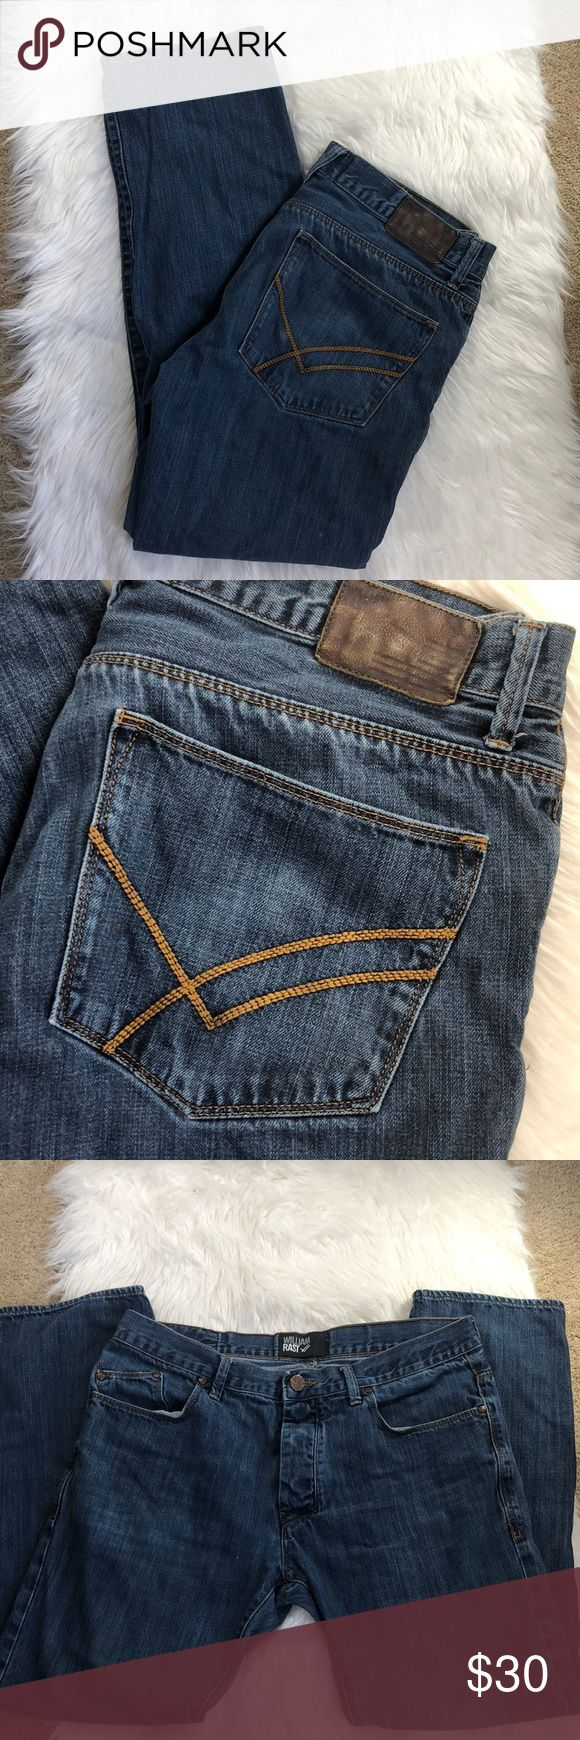 Men's William Rast 36x32 Straight Leg Jeans William Rast 36x32 Straight Leg Blue Jeans. Excellent condition. Button up fly. No flaws. Bundle to save! :) William Rast Jeans Straight